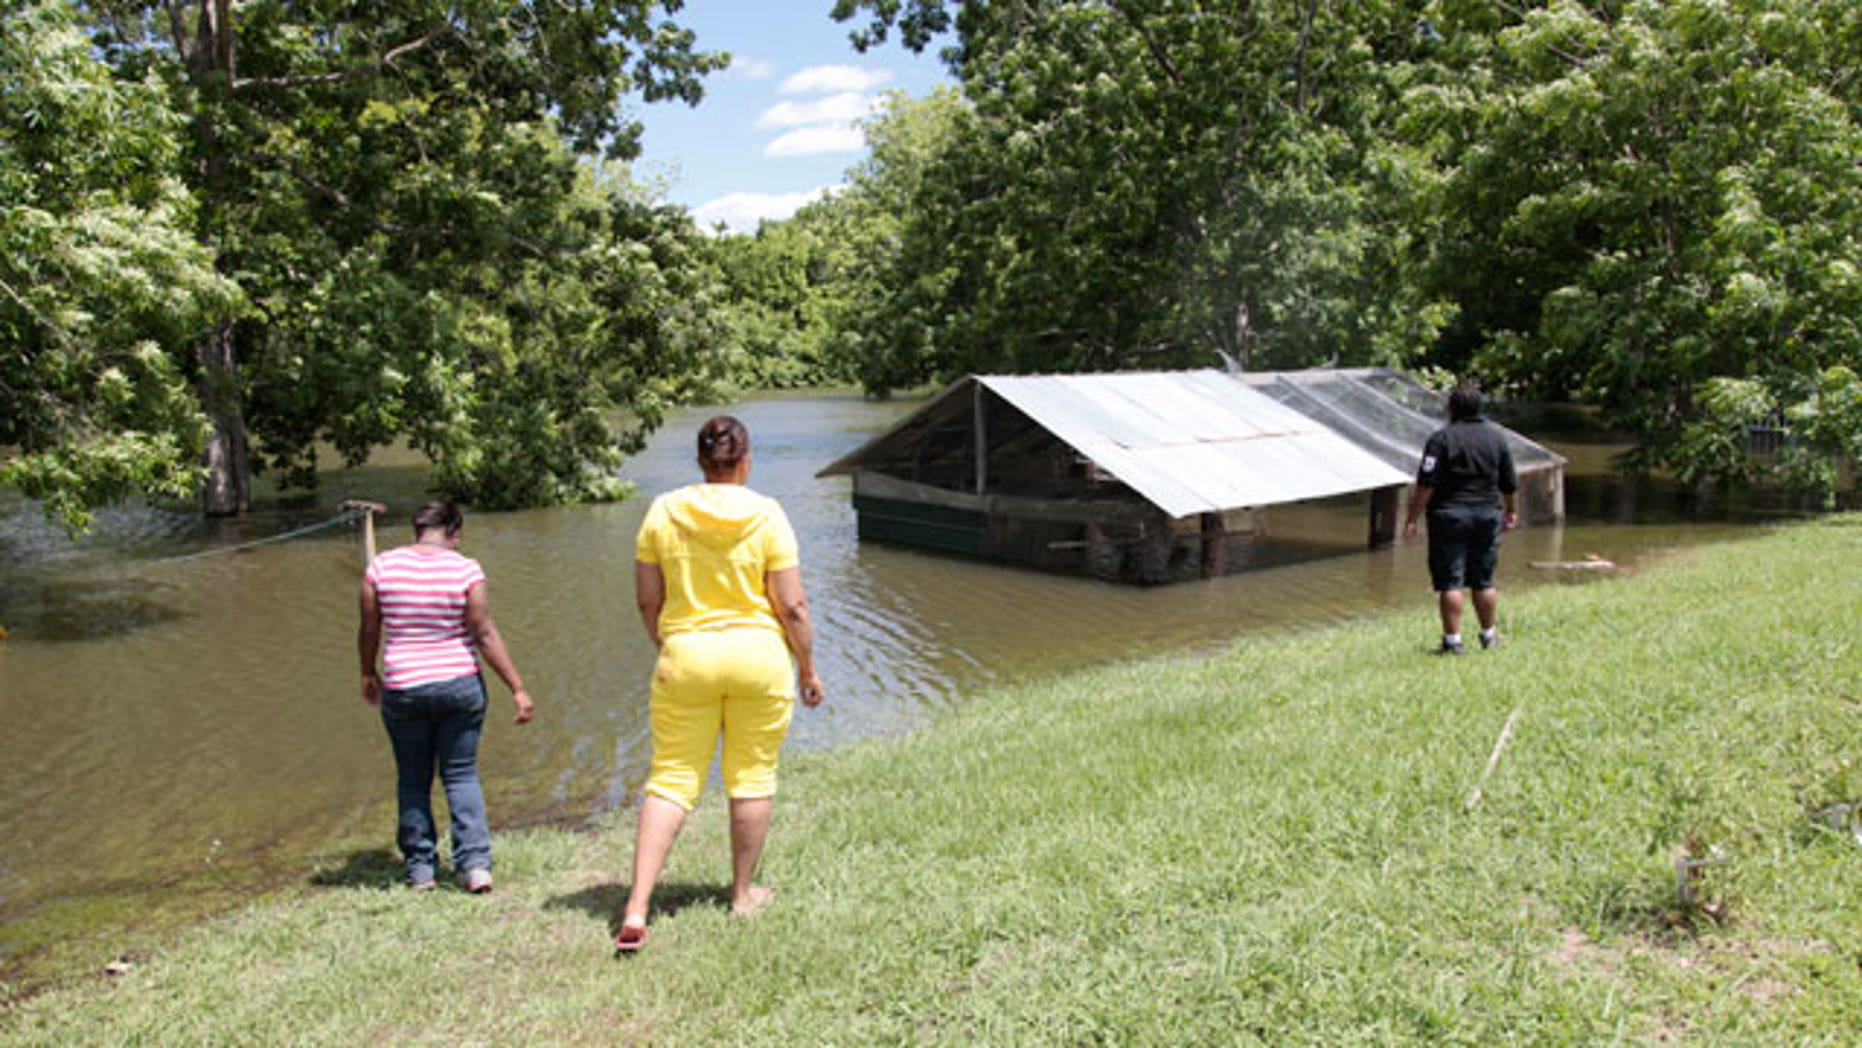 Sherrel Hall, right, and Debra Prater, left, look at rising floodwaters from the Atchafalaya River as it encroaches on a shed where camps and homes sit in Simmesport, La., Monday, May 16, 2011.